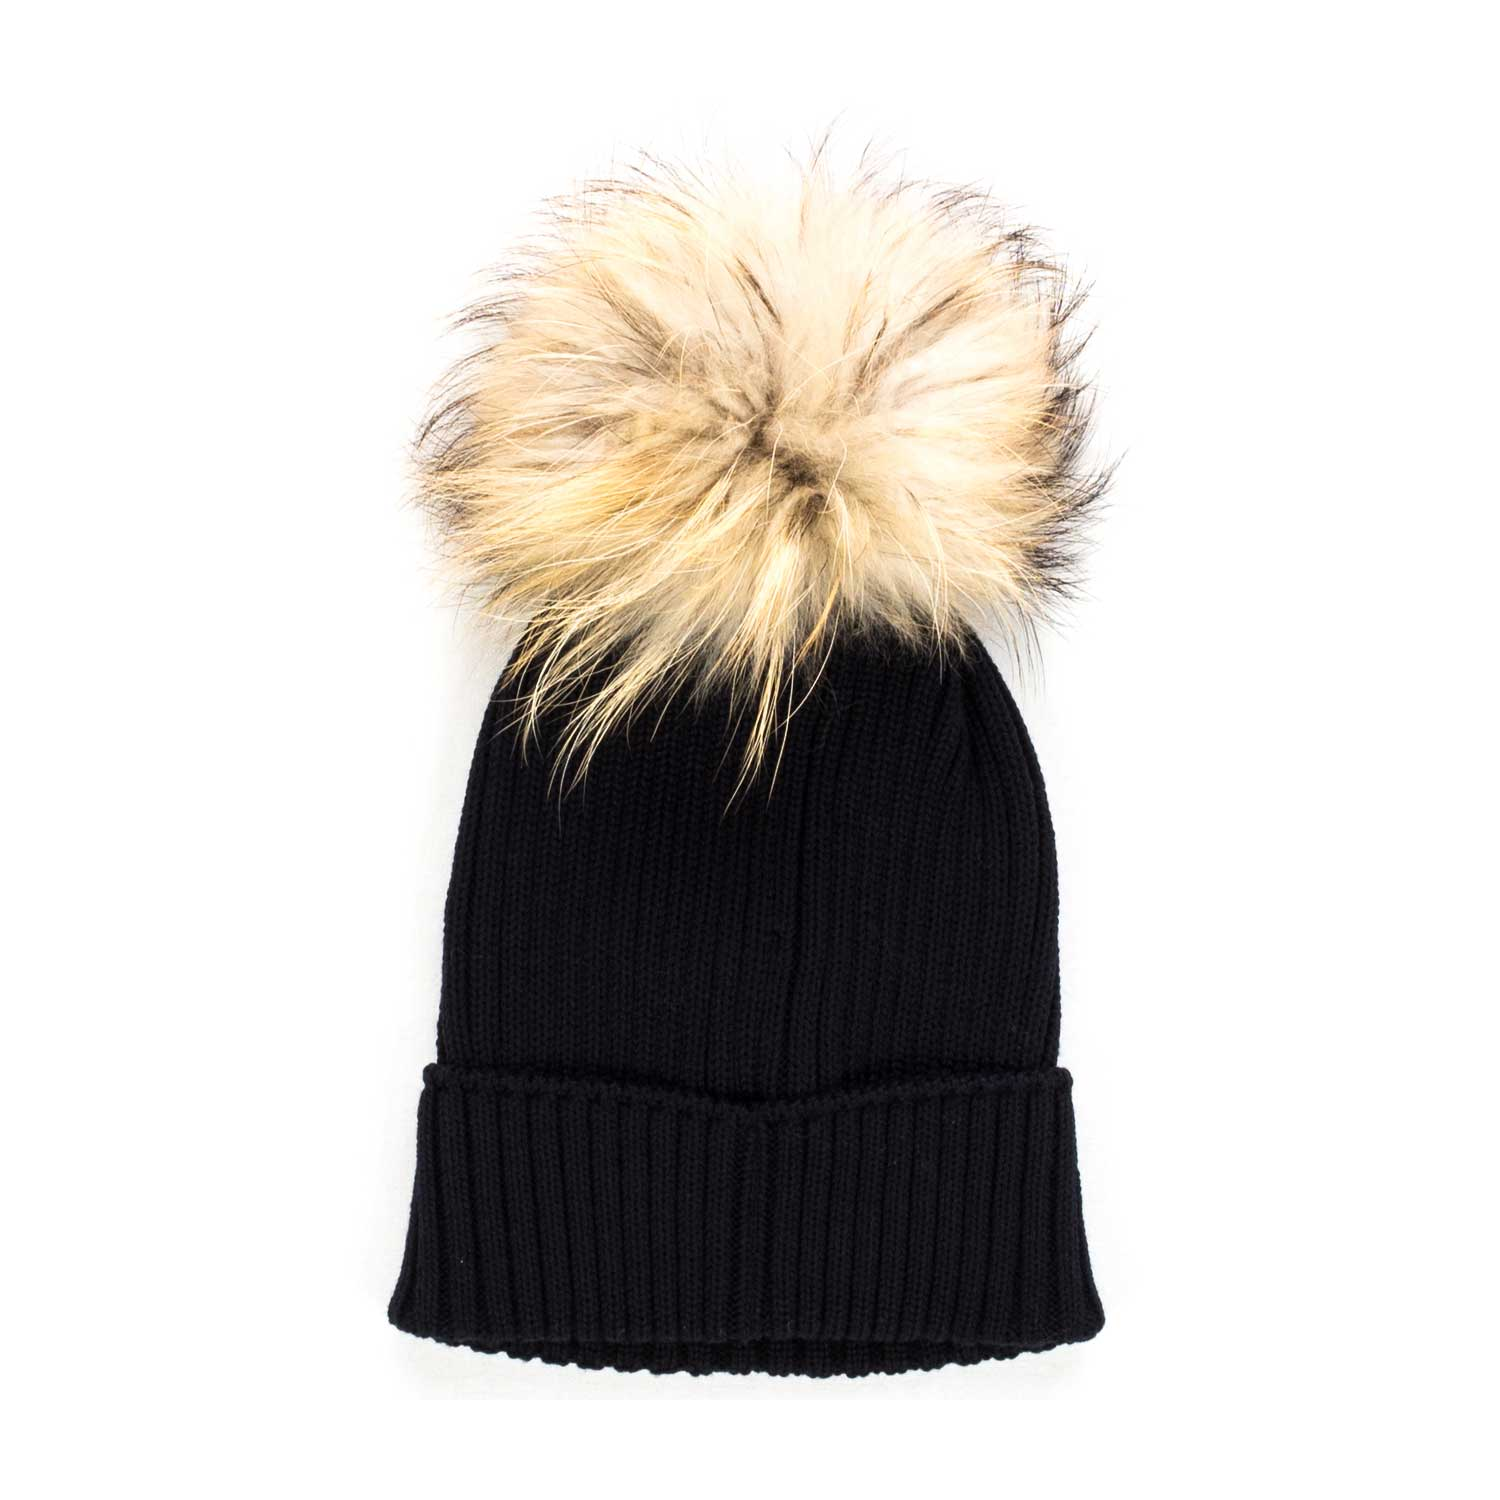 Moncler - Girl Blue Knitted Bobble Hat - annameglio.com shop online 61904f855f11